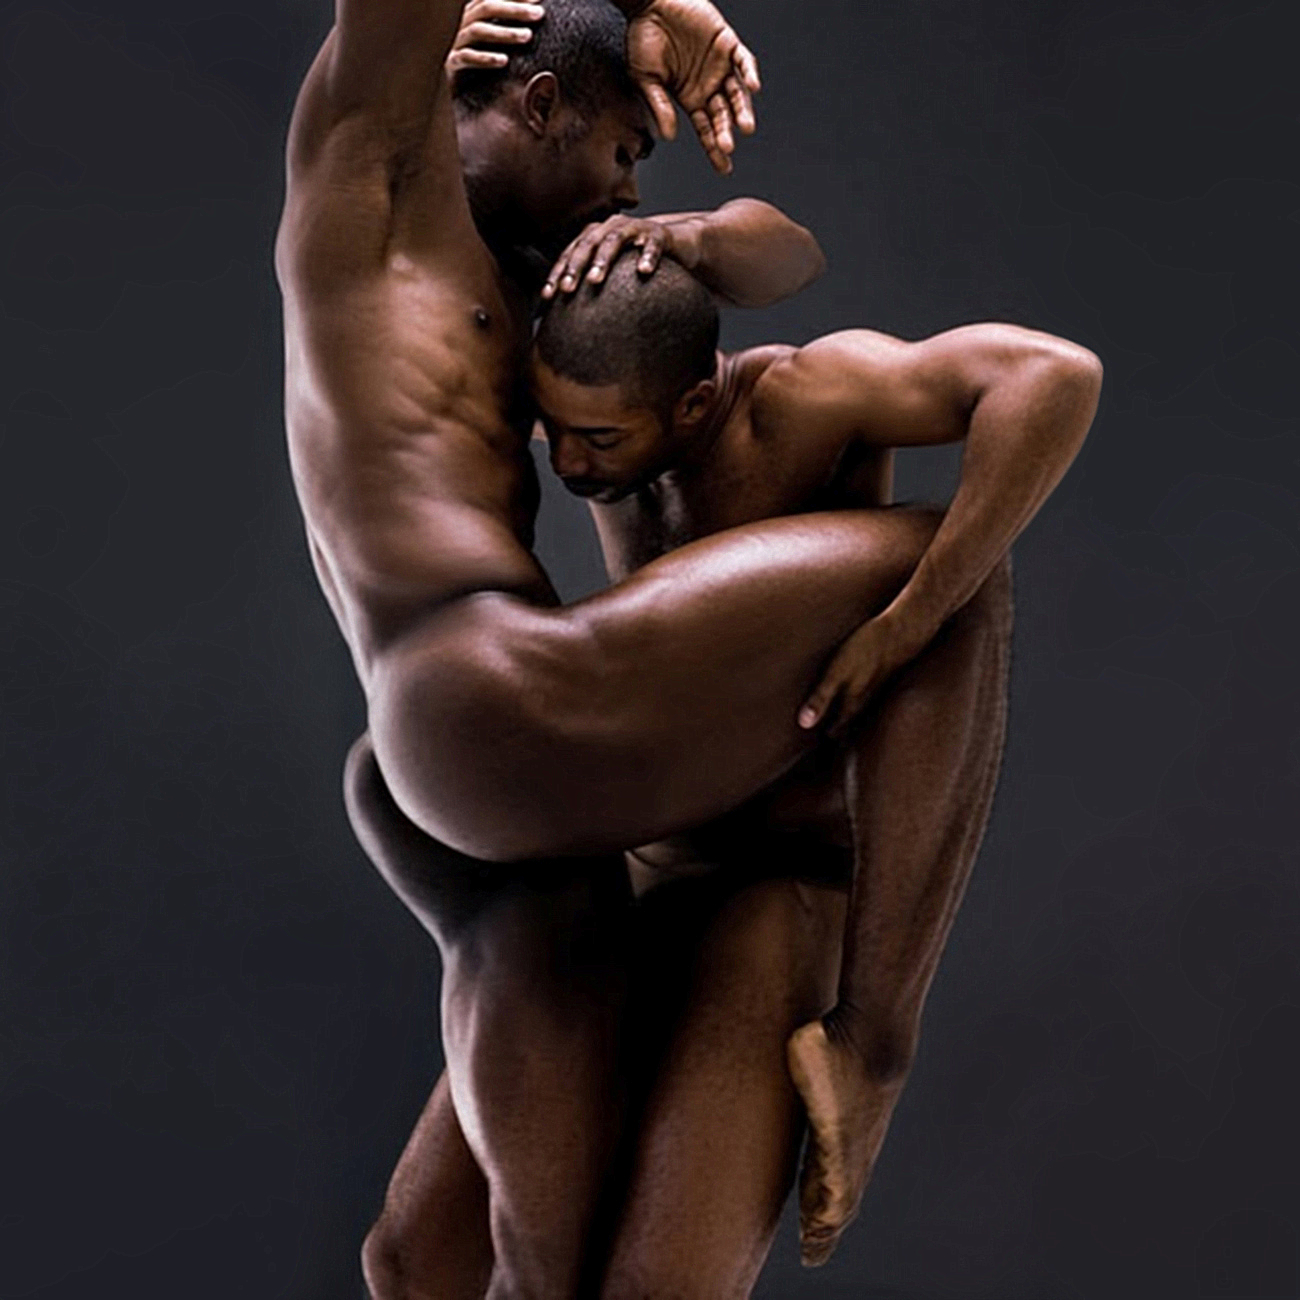 Hot Black Guys Posing Nude In Provocative Poses